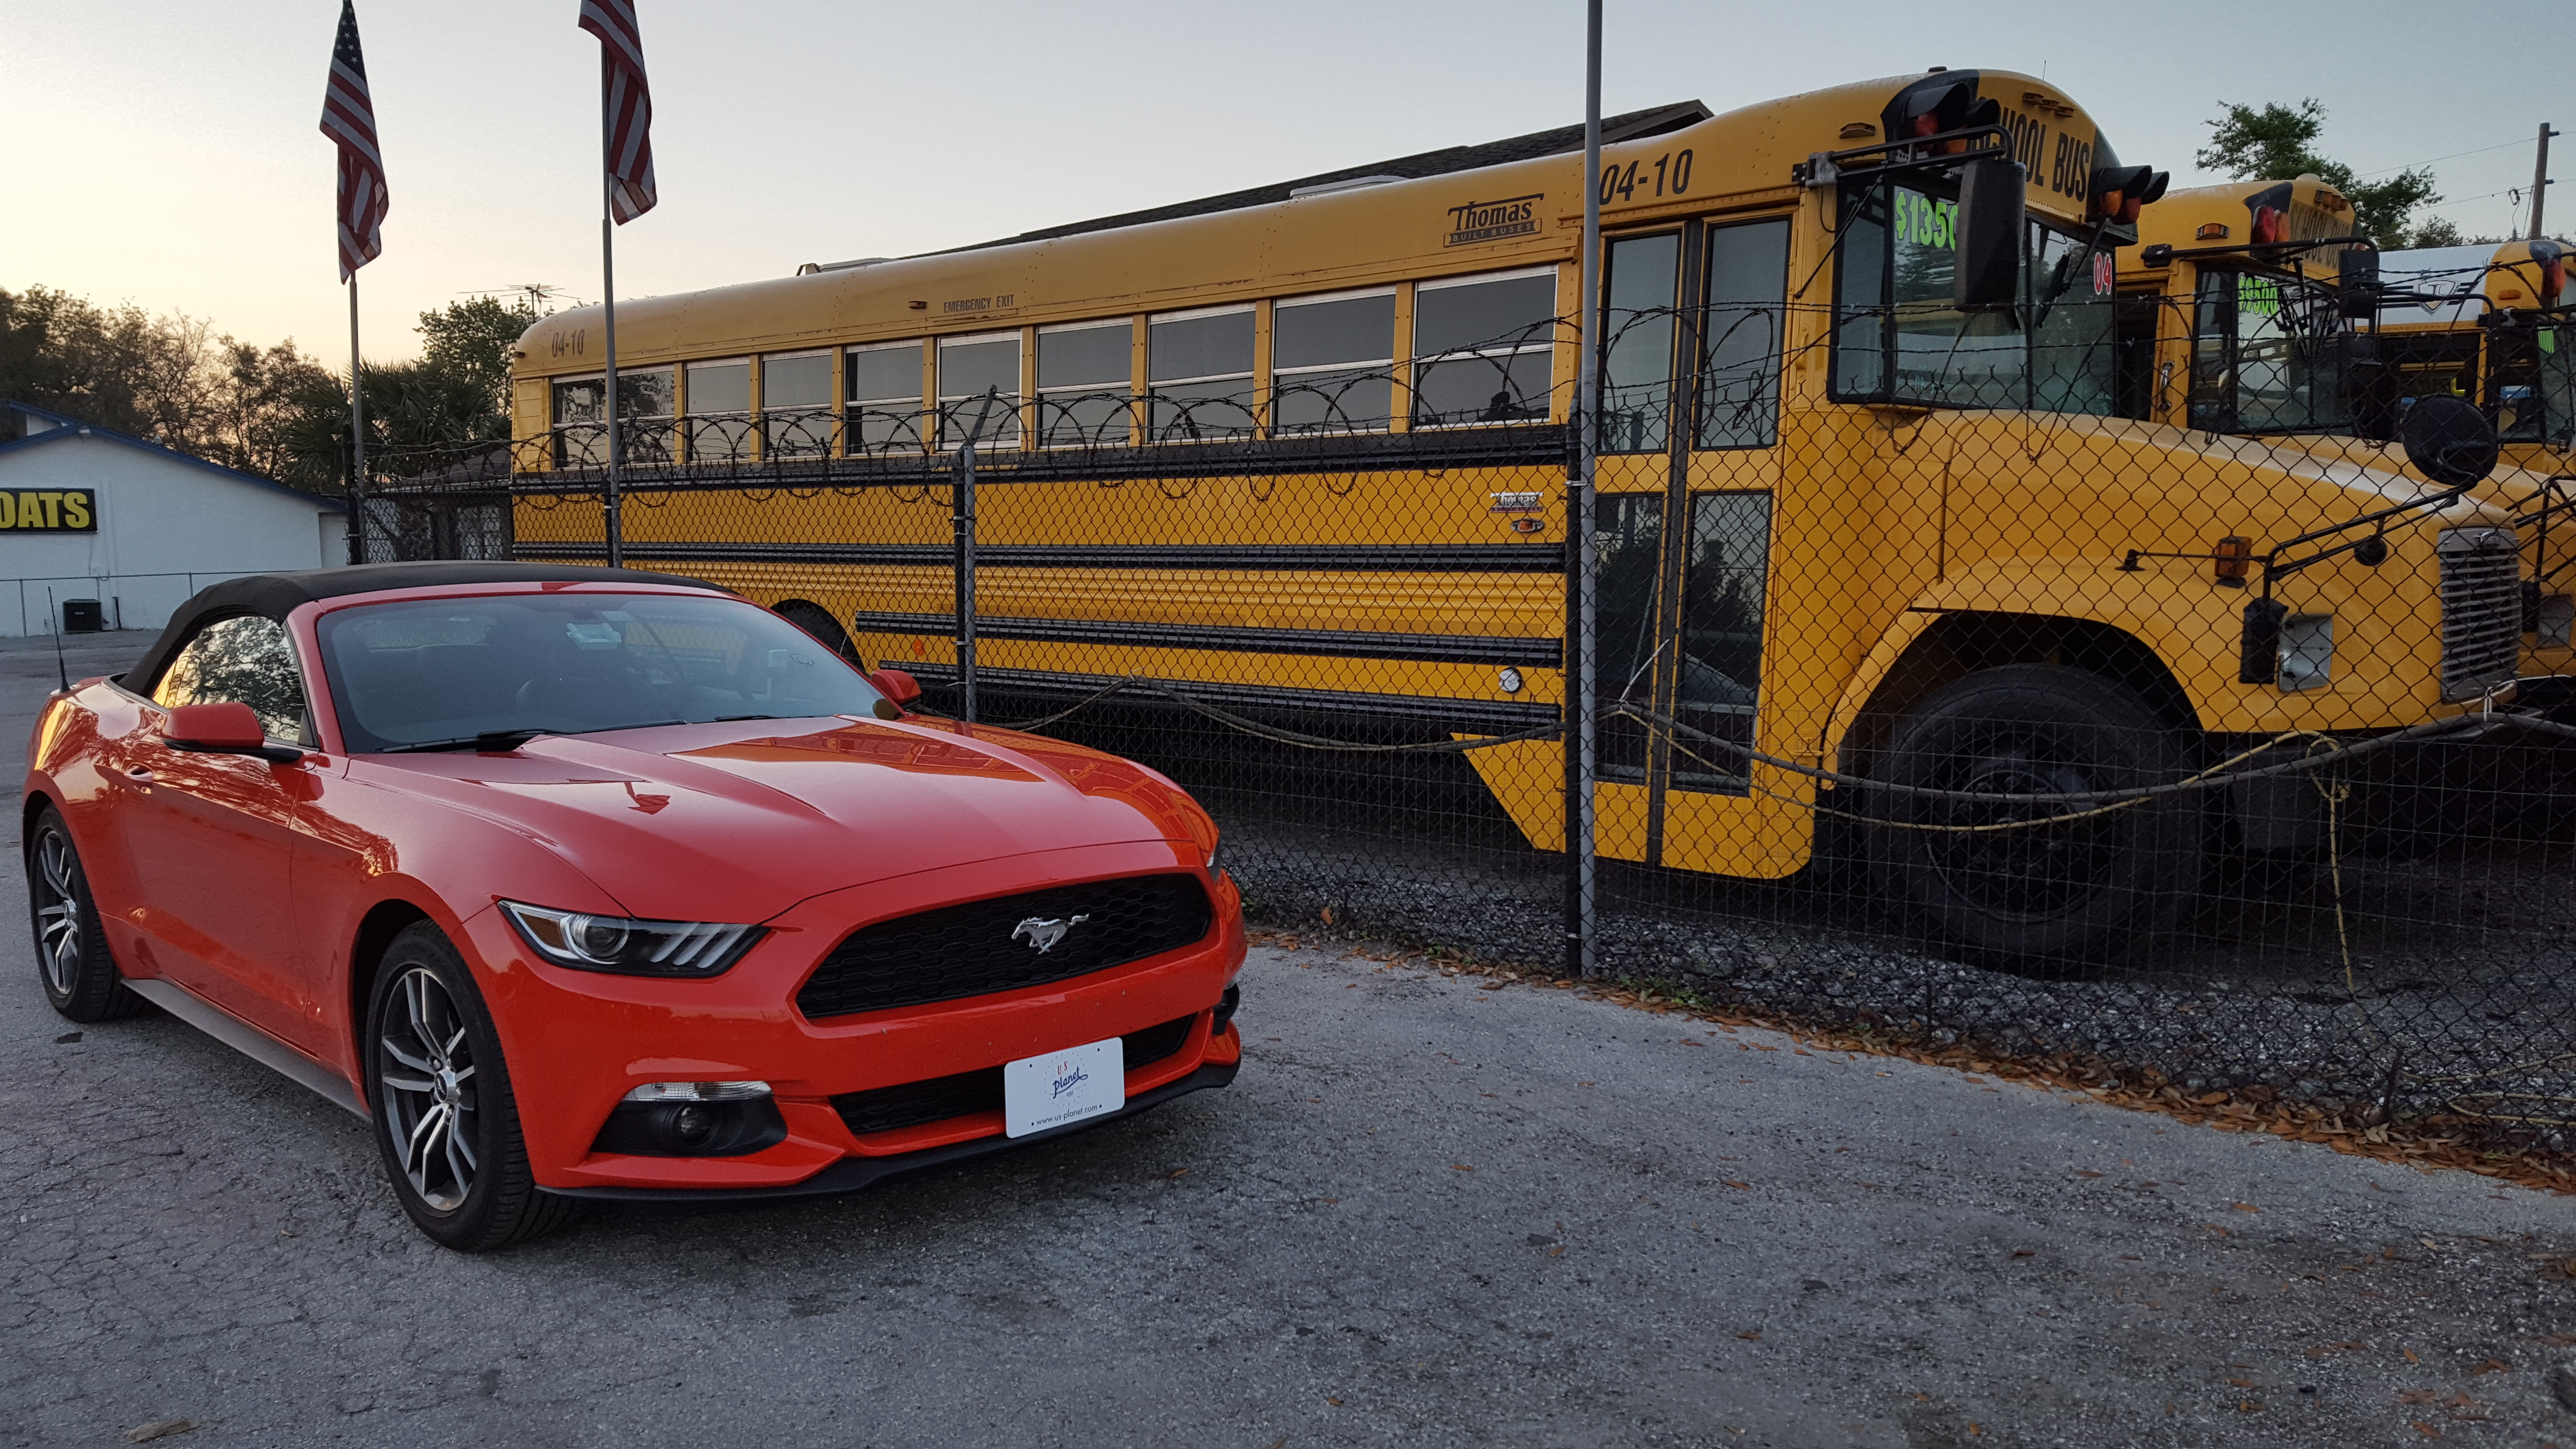 Importation de school bus américain - Import de Ford Mustang de collection